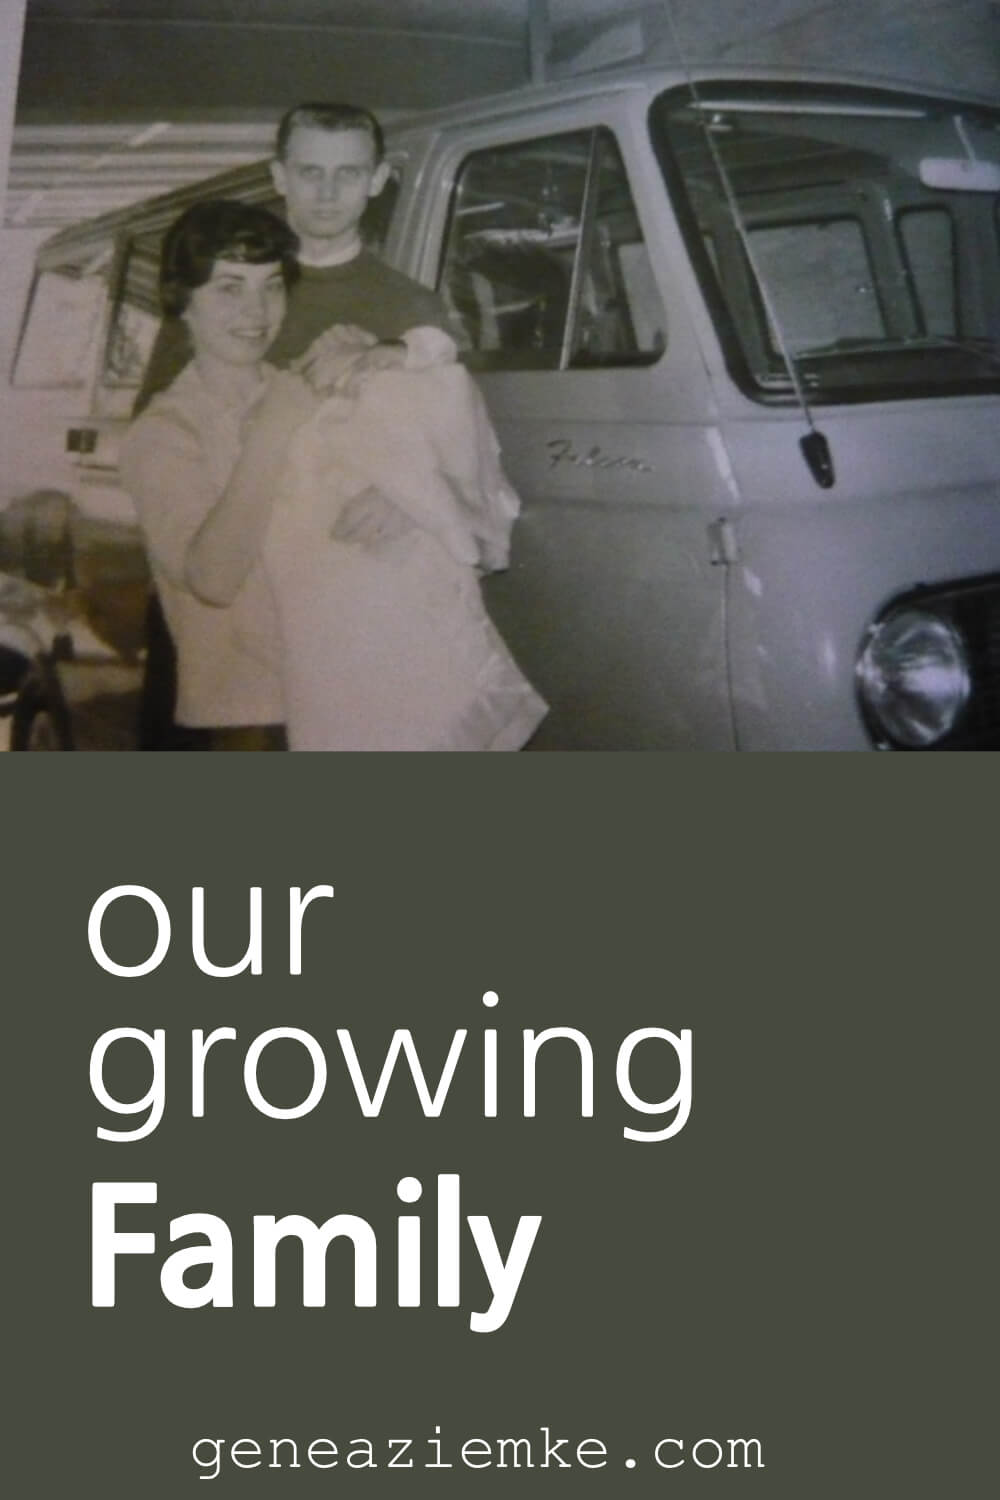 The Ziemke Story - Our Growing Family - 1965